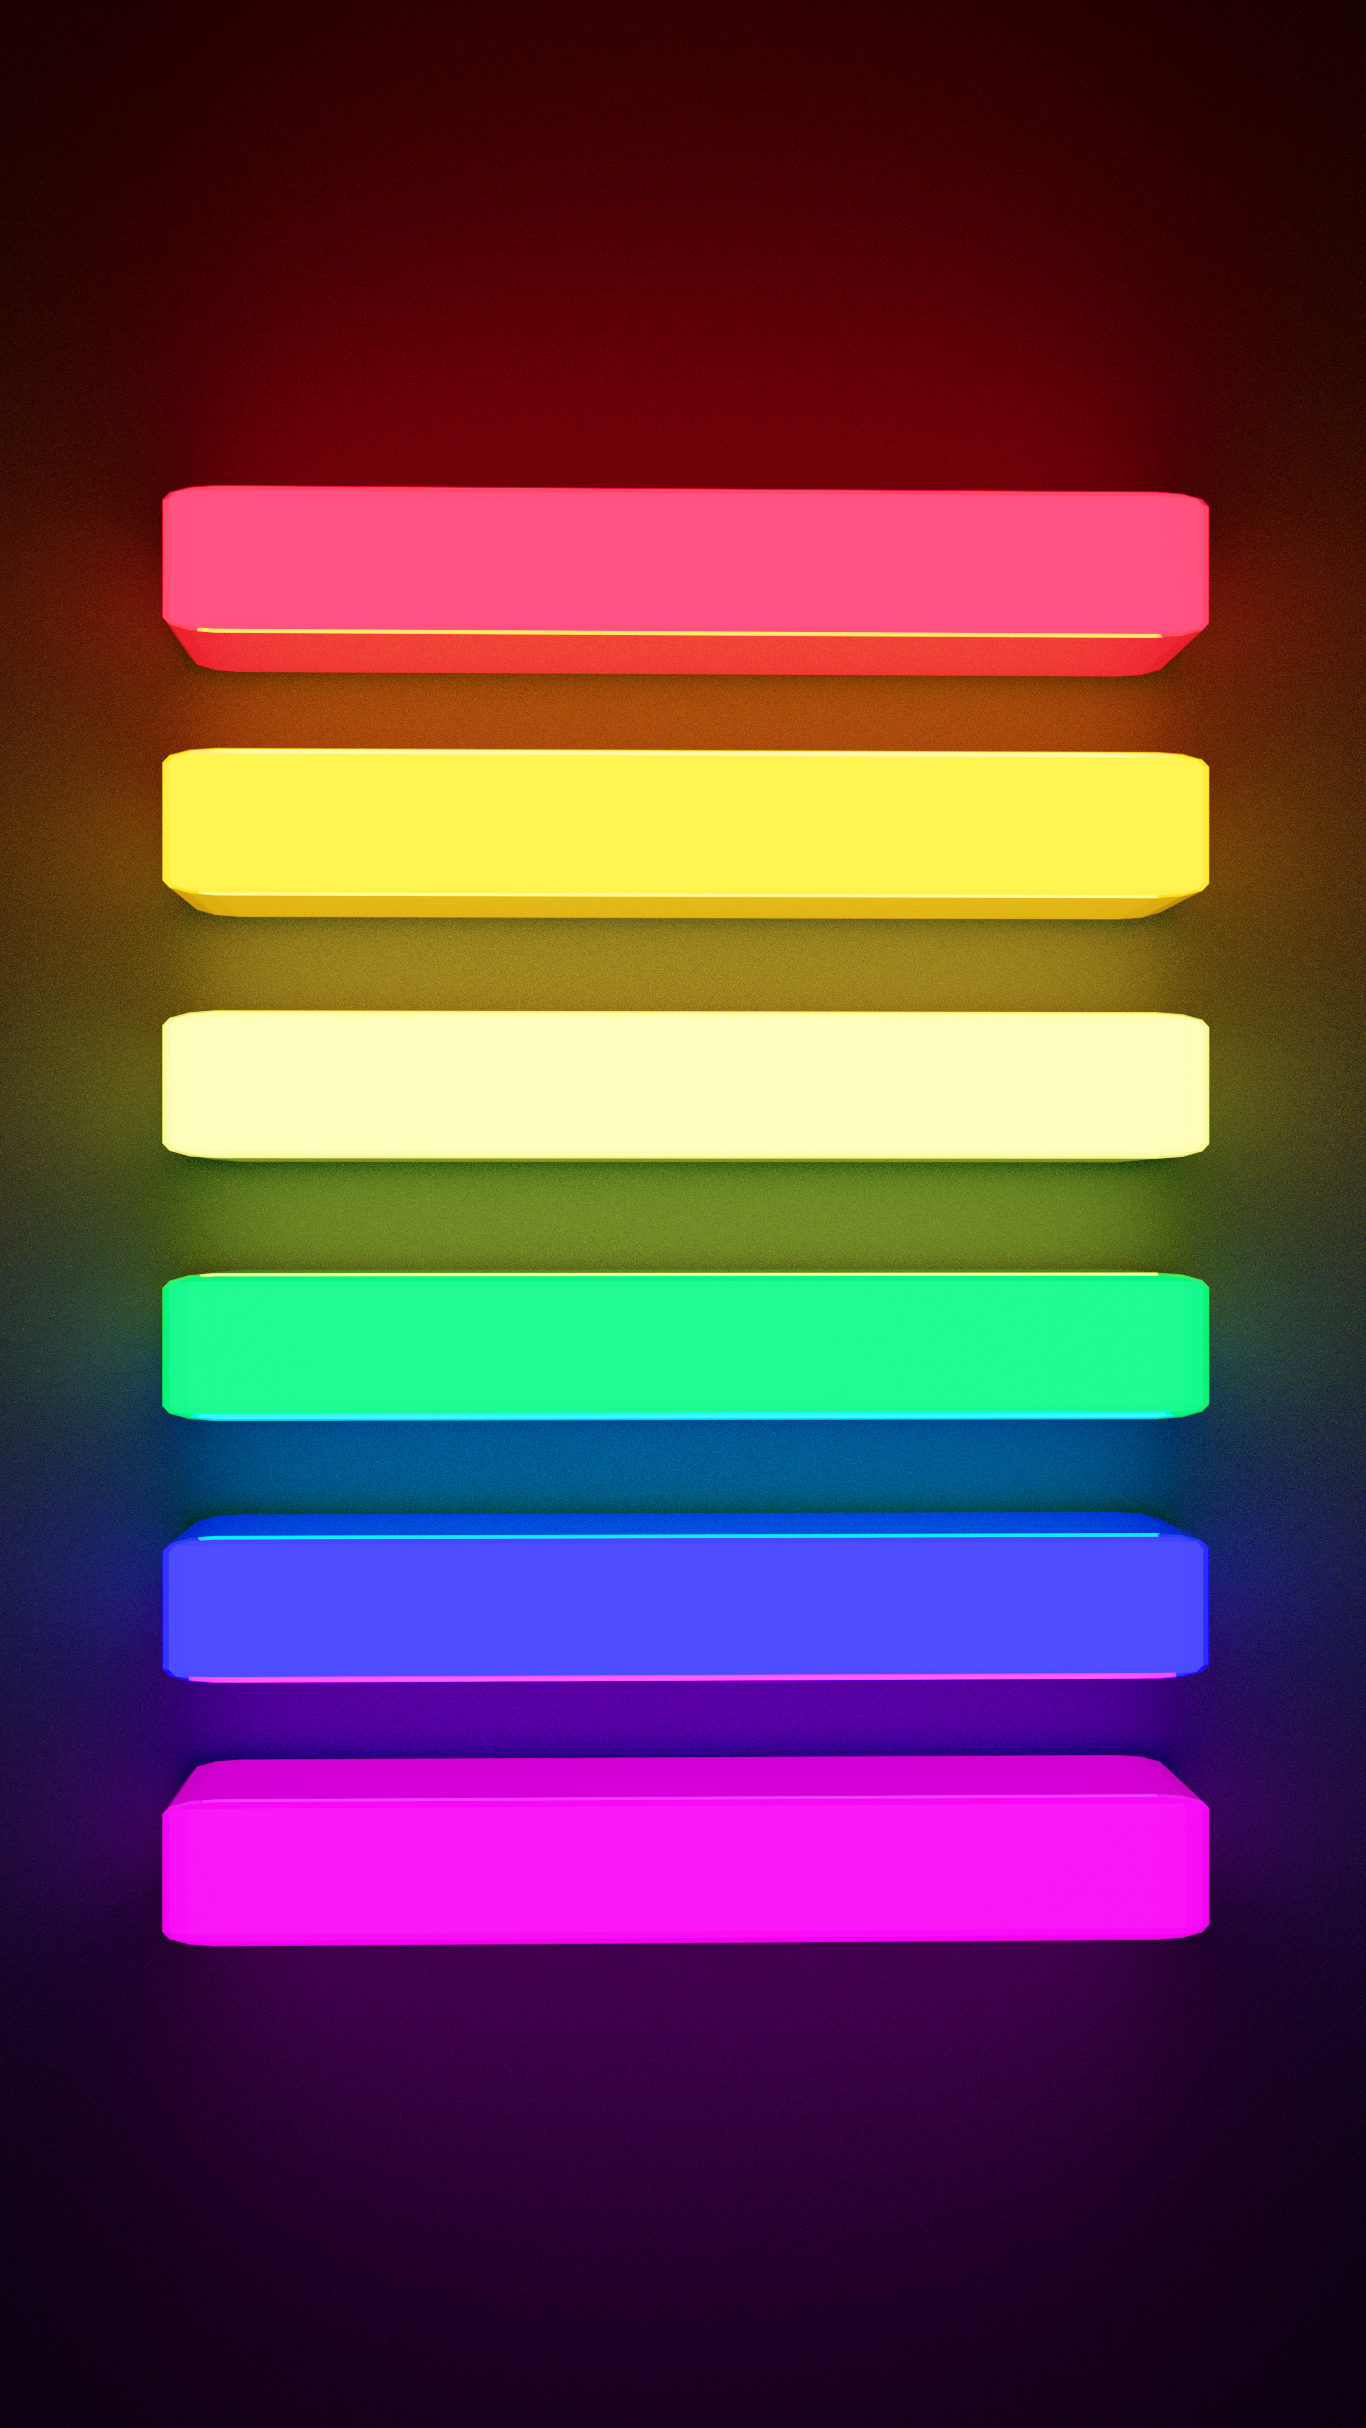 LGBT Phone Wallpapers   Top LGBT Phone Backgrounds 1366x2428